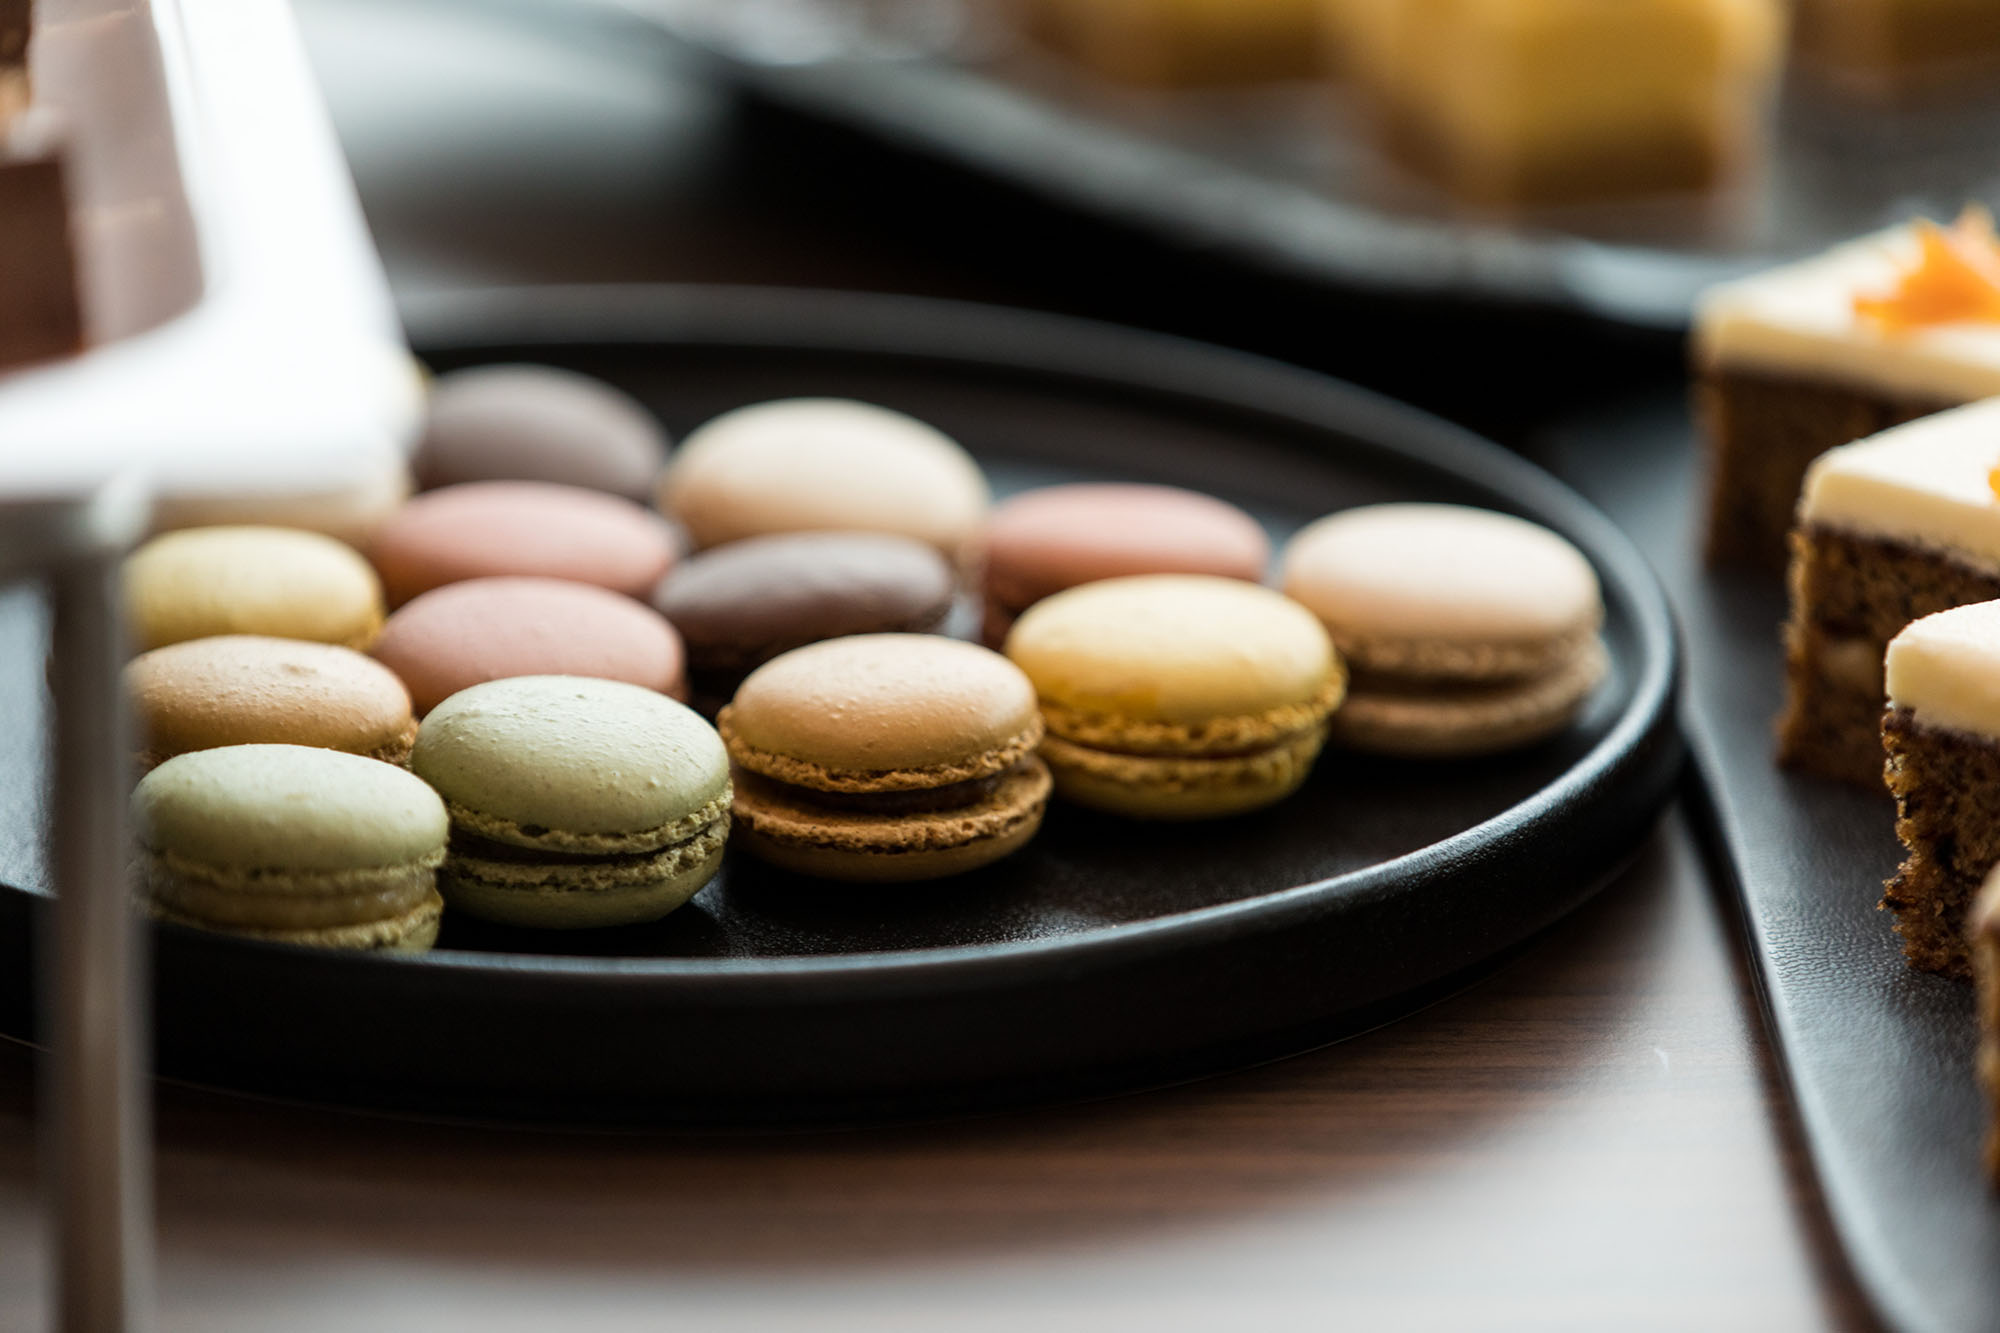 A plate of different coloured macaron biscuits